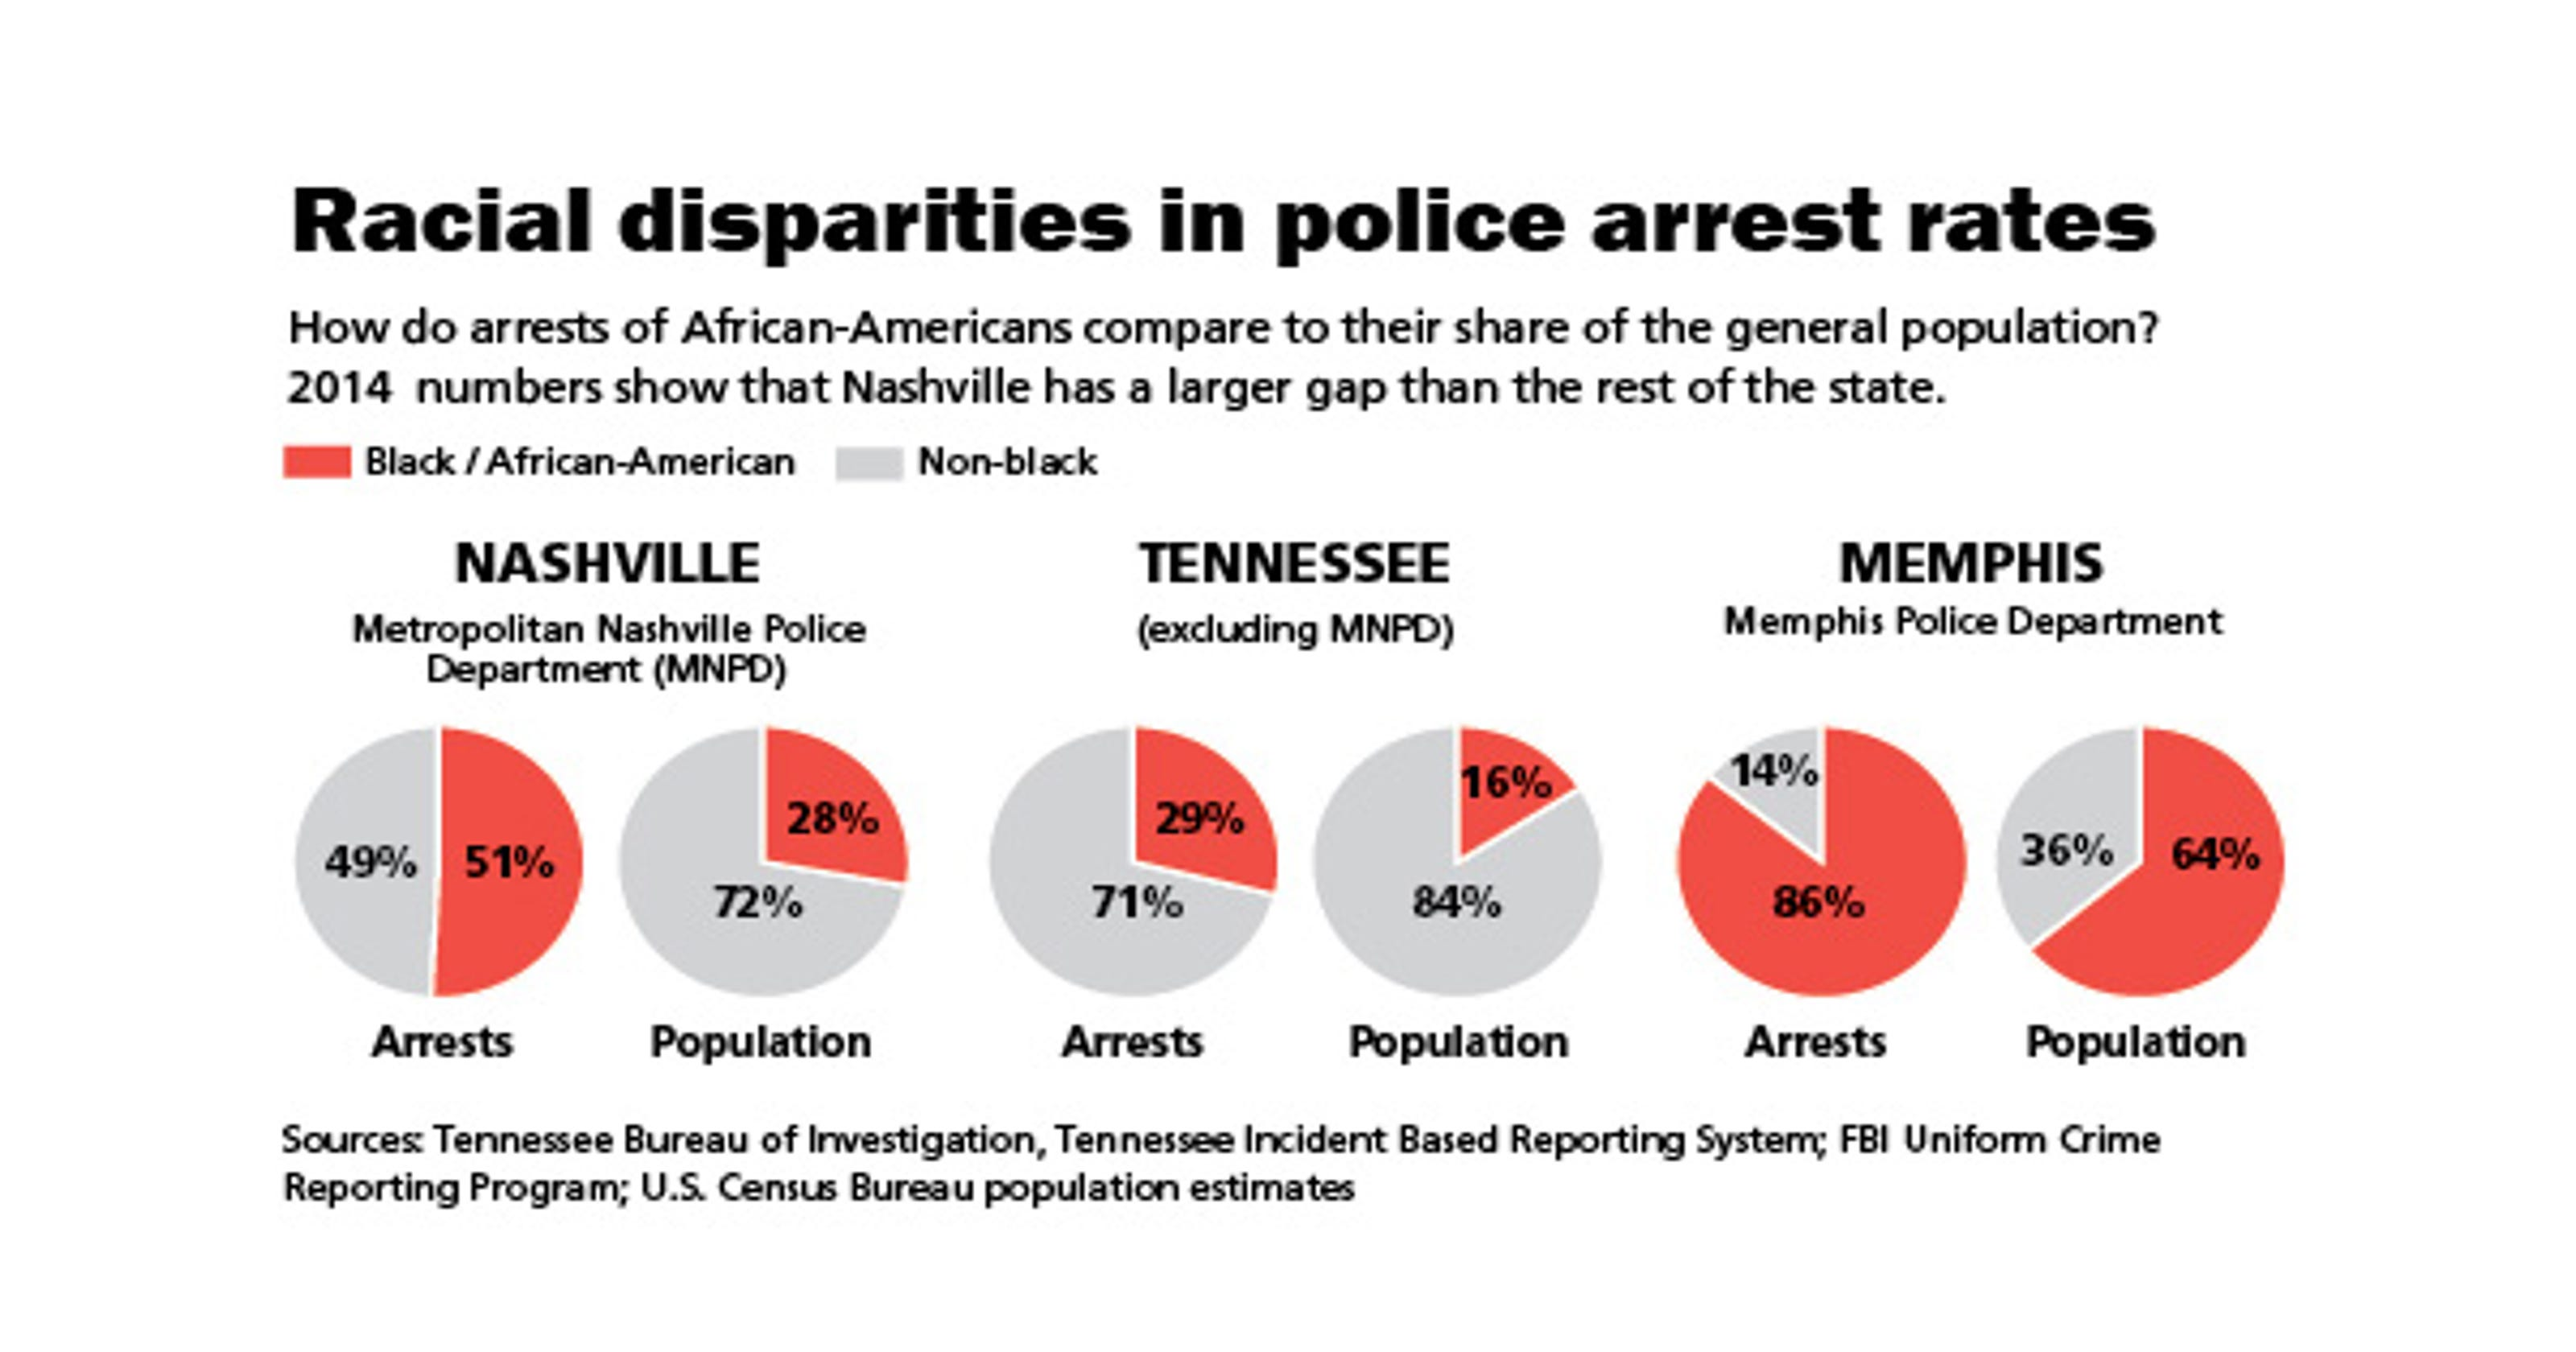 Racial disparities in arrests: How does Nashville compare?